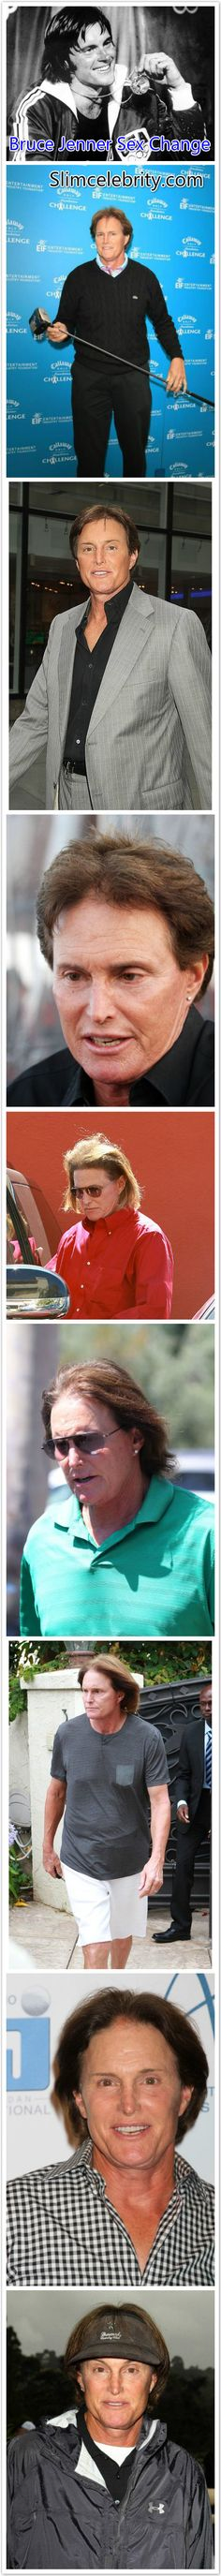 Bruce Jenner sex change before and after!  See more here! http://slimcelebrity.com/plastic-surgery/bruce-jenner-sex-change-plastic-surgery-before-and-after/